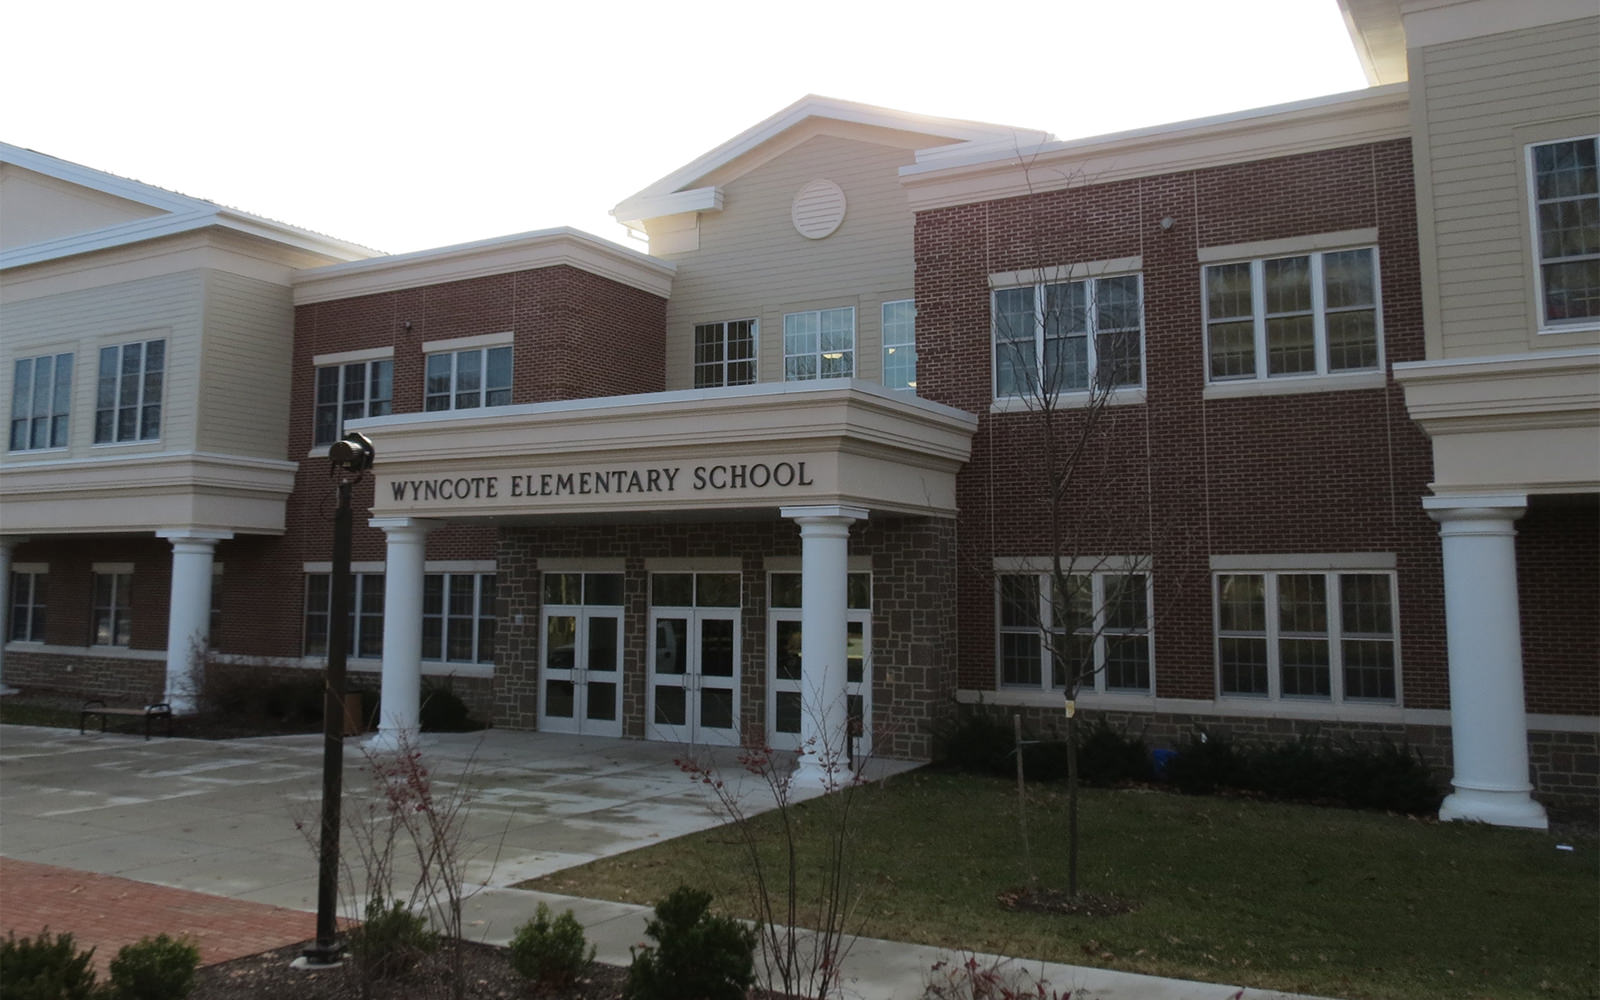 New Wyncote Elementary School